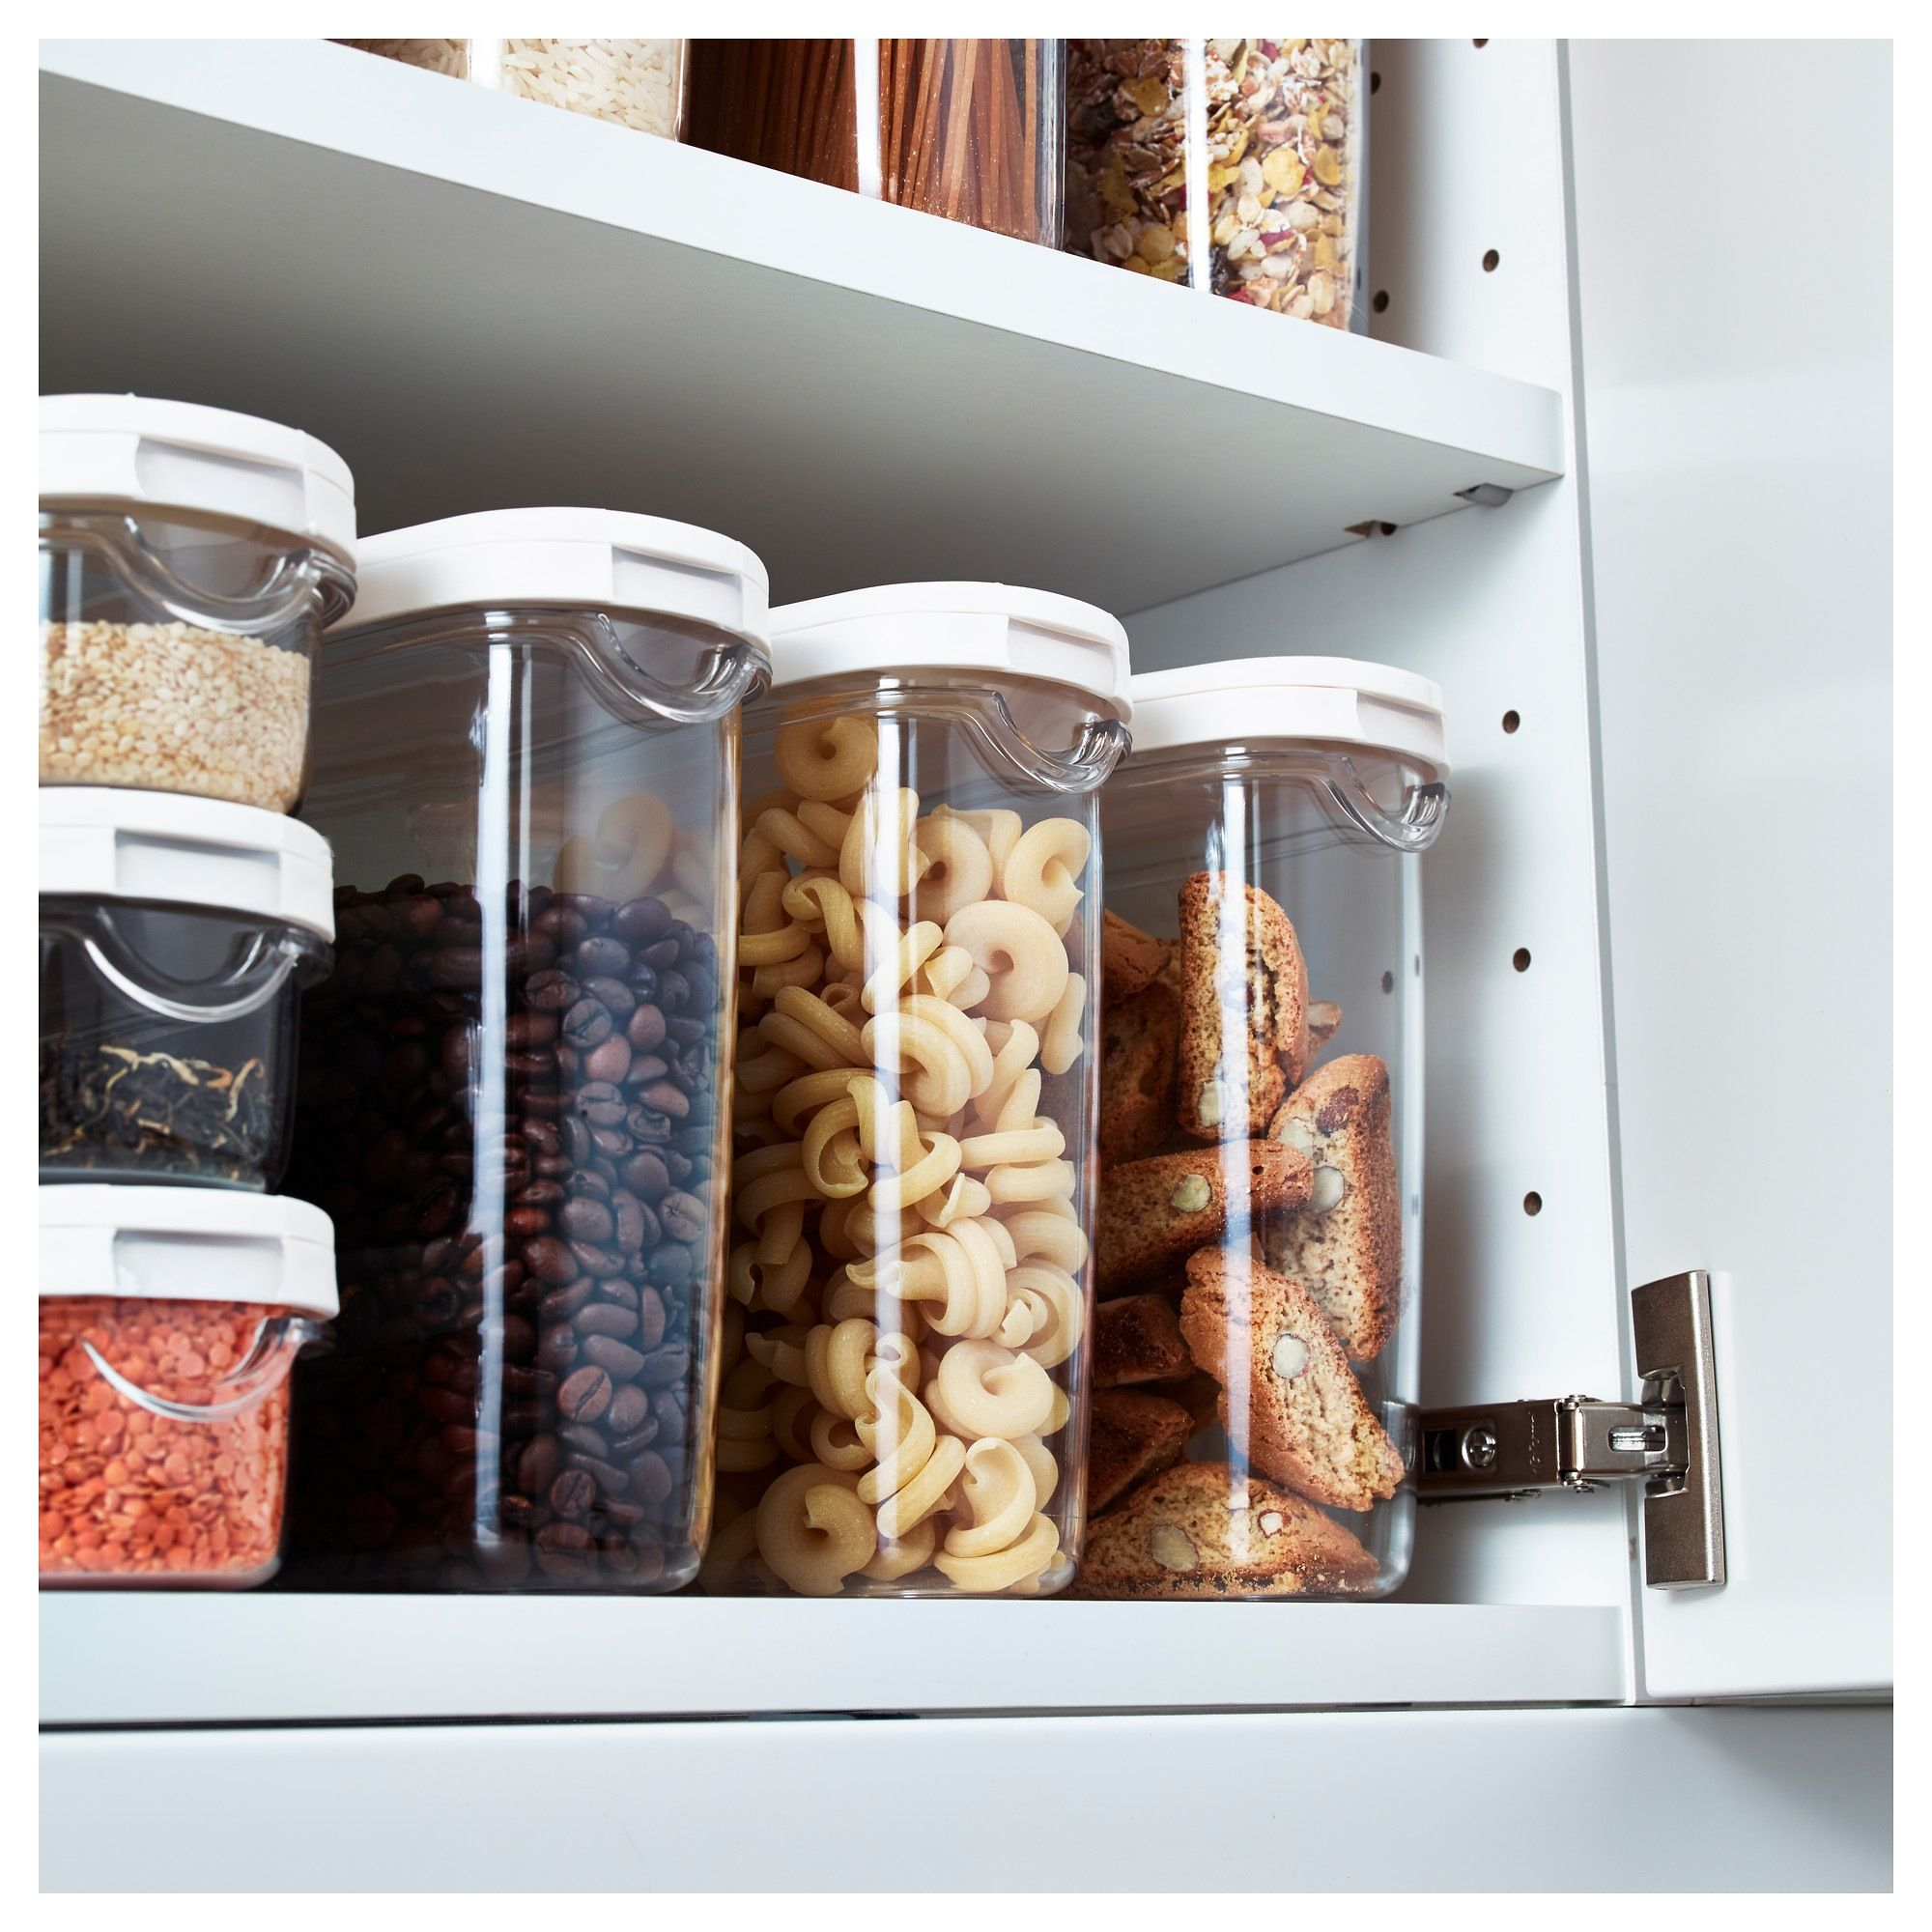 ikea kitchen inspiration how to build